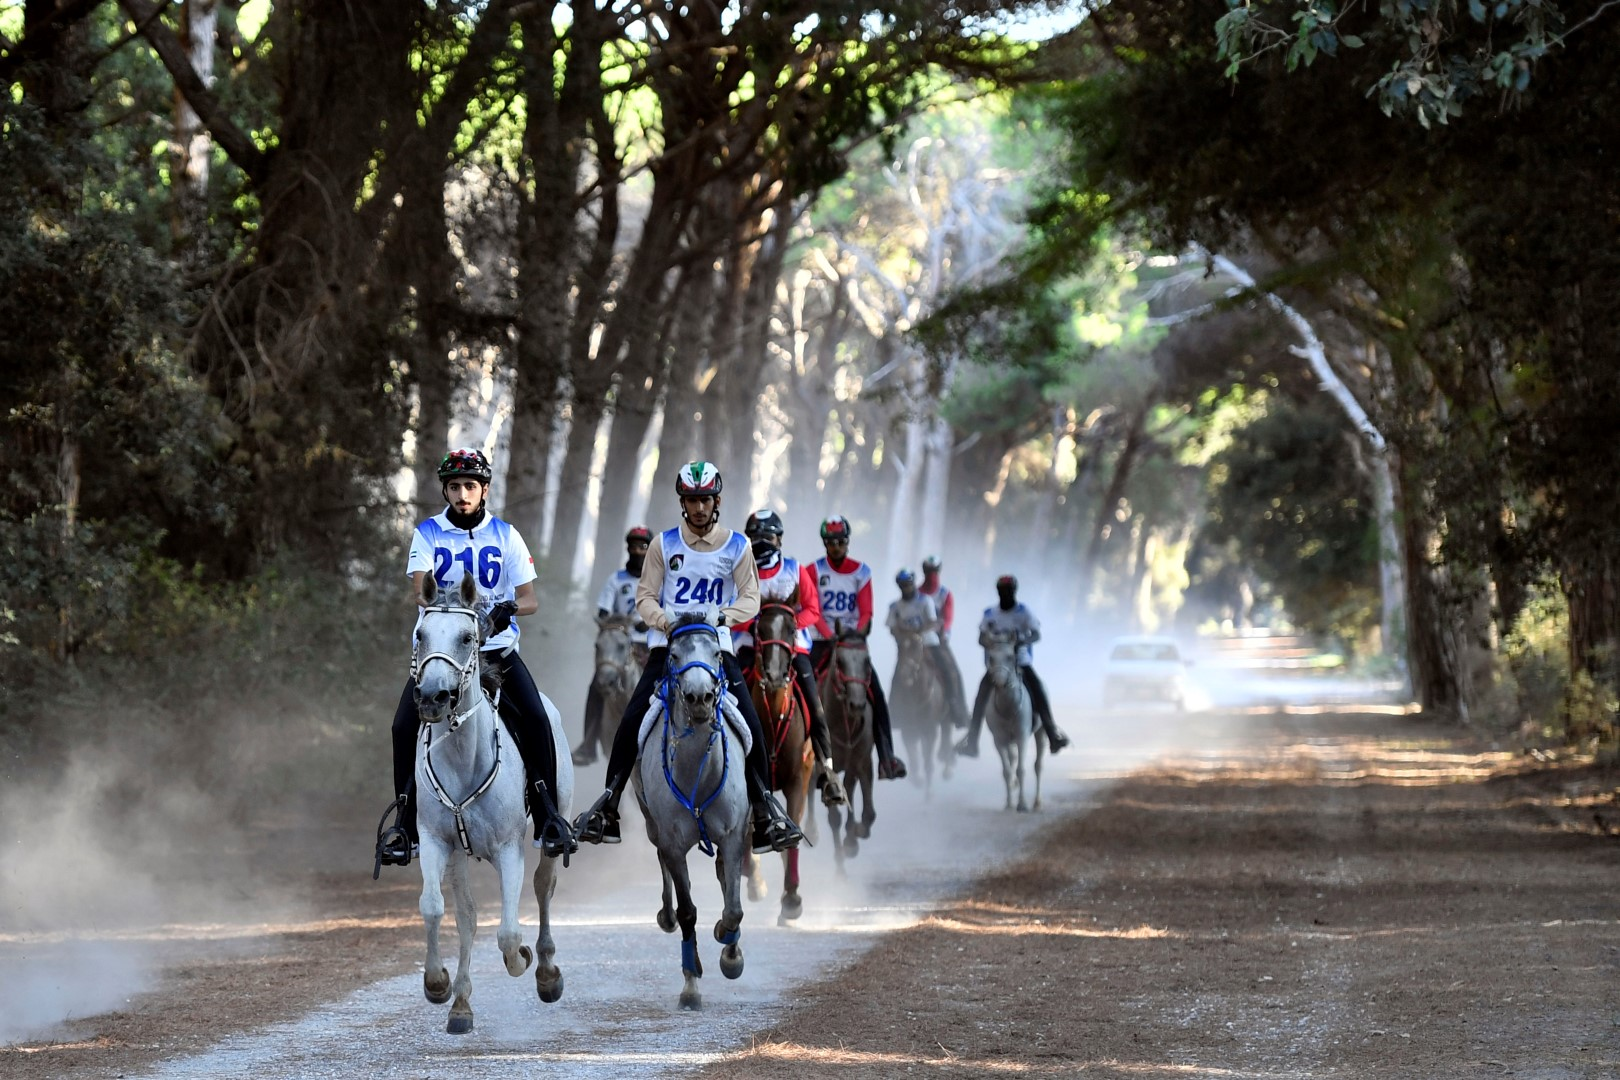 UAE Knights to vie for top honors in endurance race